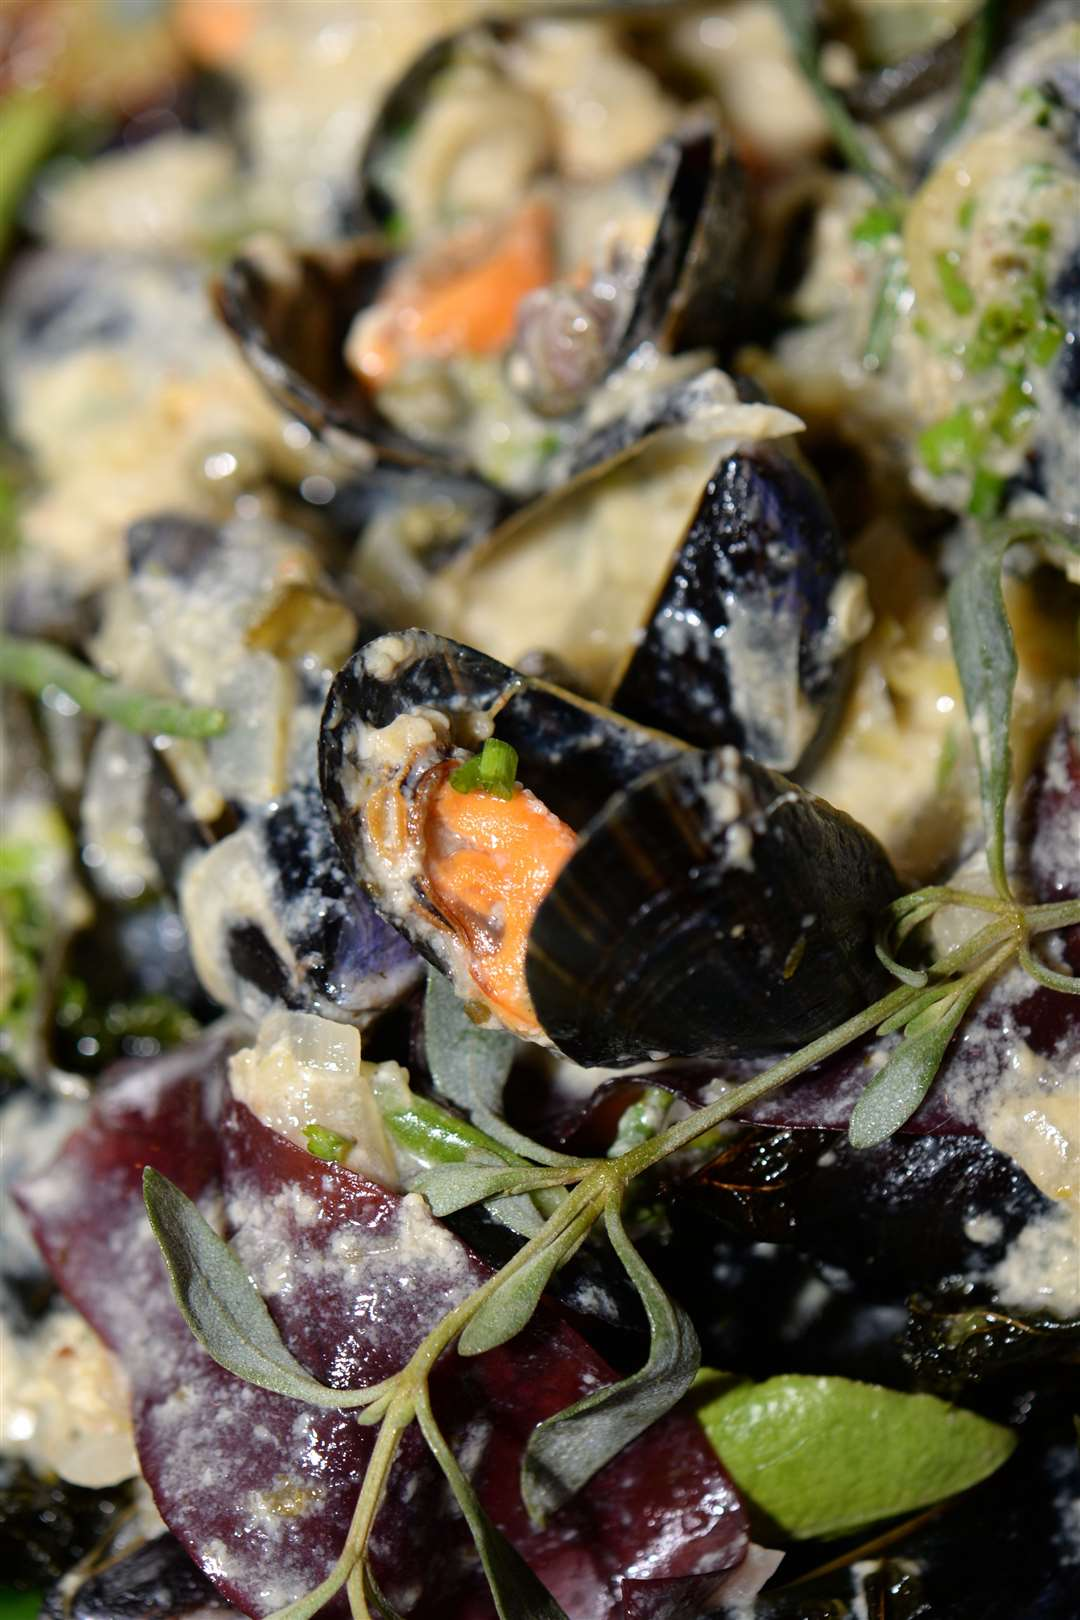 Saira's choice was native blueshell mussels in a Thai green and lemongrass curry saucePic: Vikki Lince (7656570)